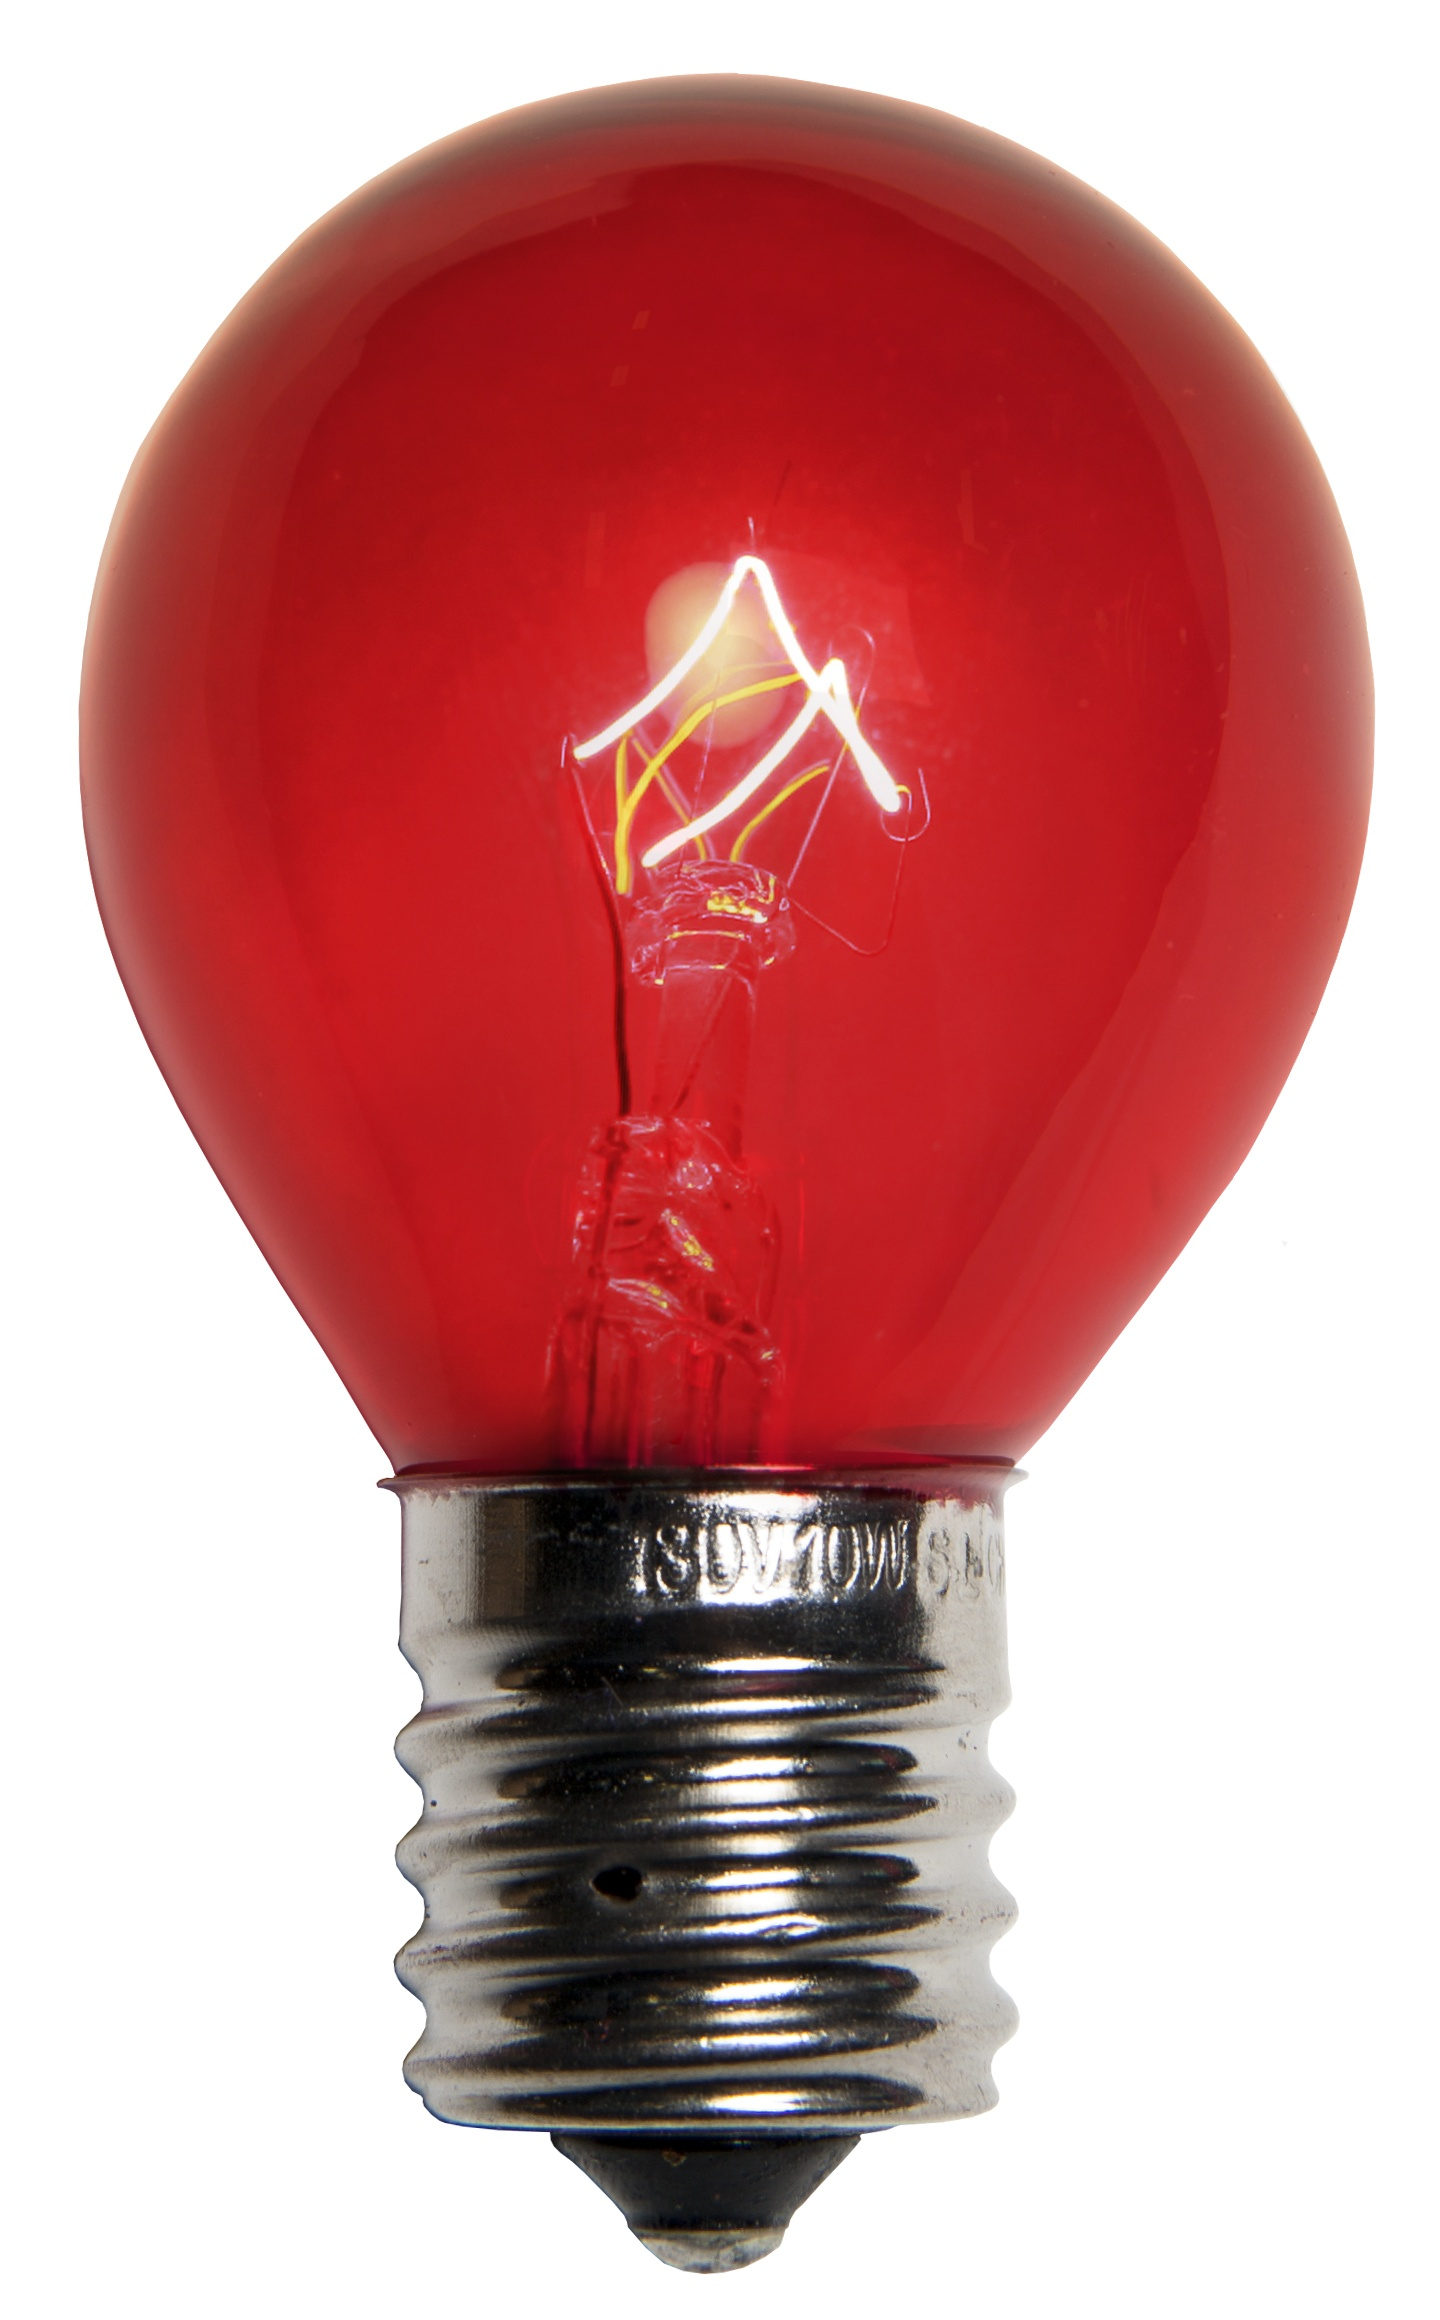 Led Lamp 25 Watt E17 Patio And Party Light Bulbs - S11 Transparent Red, 10